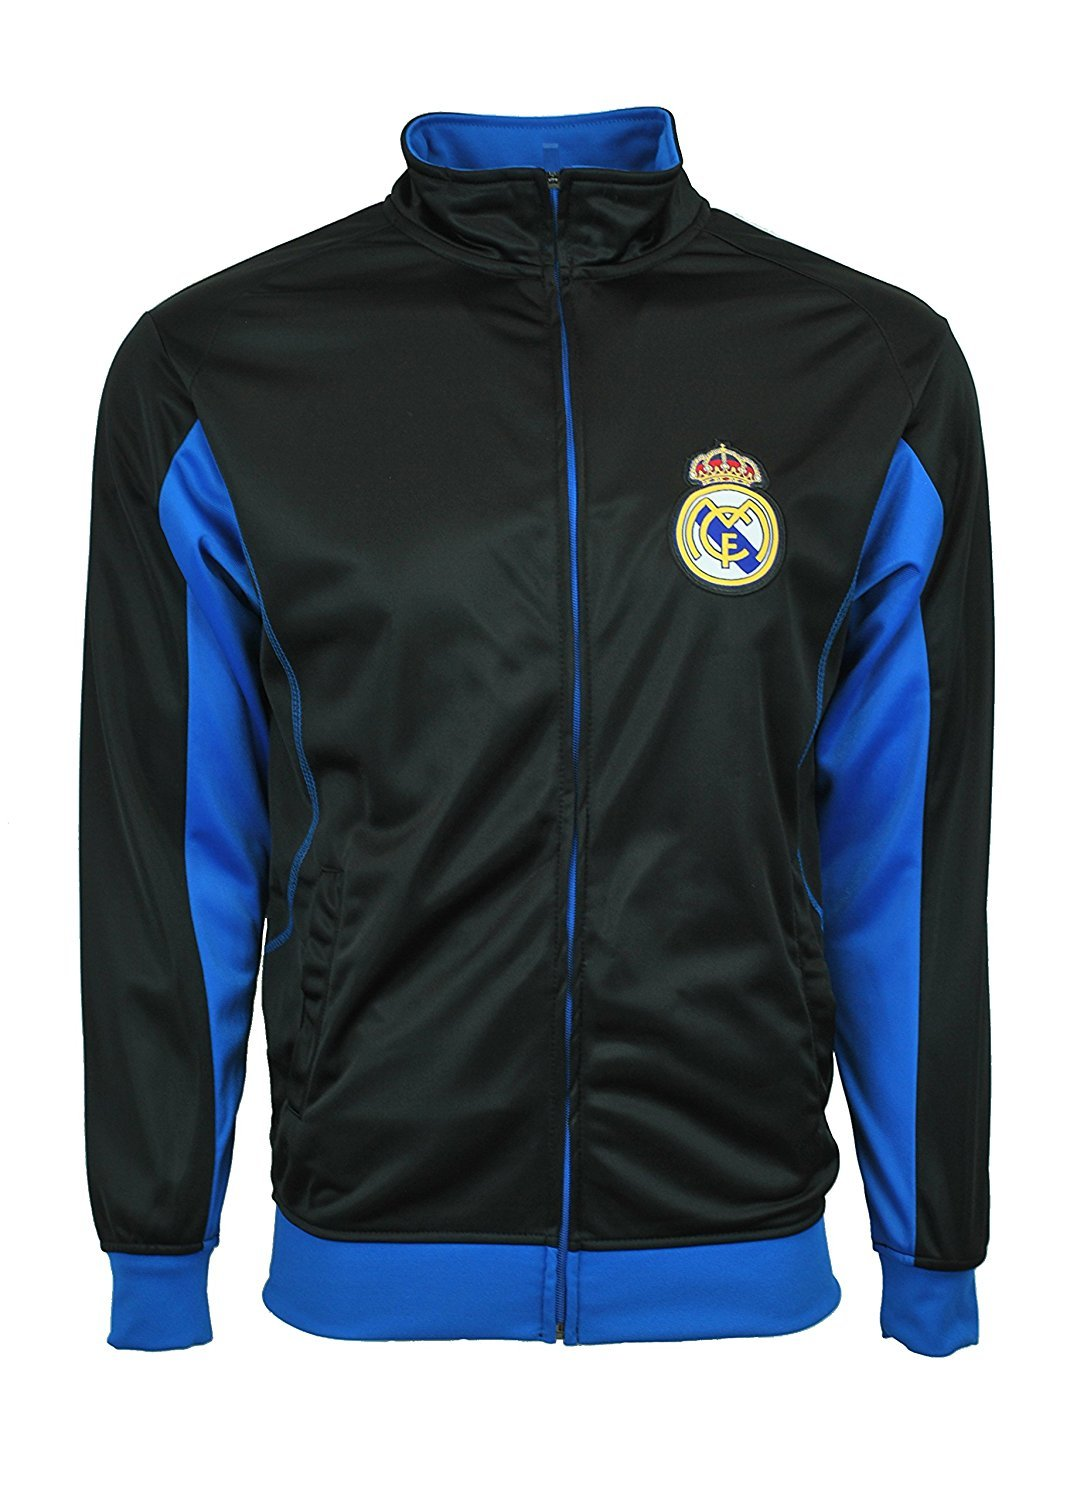 Real Madrid Jacket Track Soccer Adult Sizes Soccer Football Official Merchandise (Black L) [並行輸入品]   B074DGTZD4